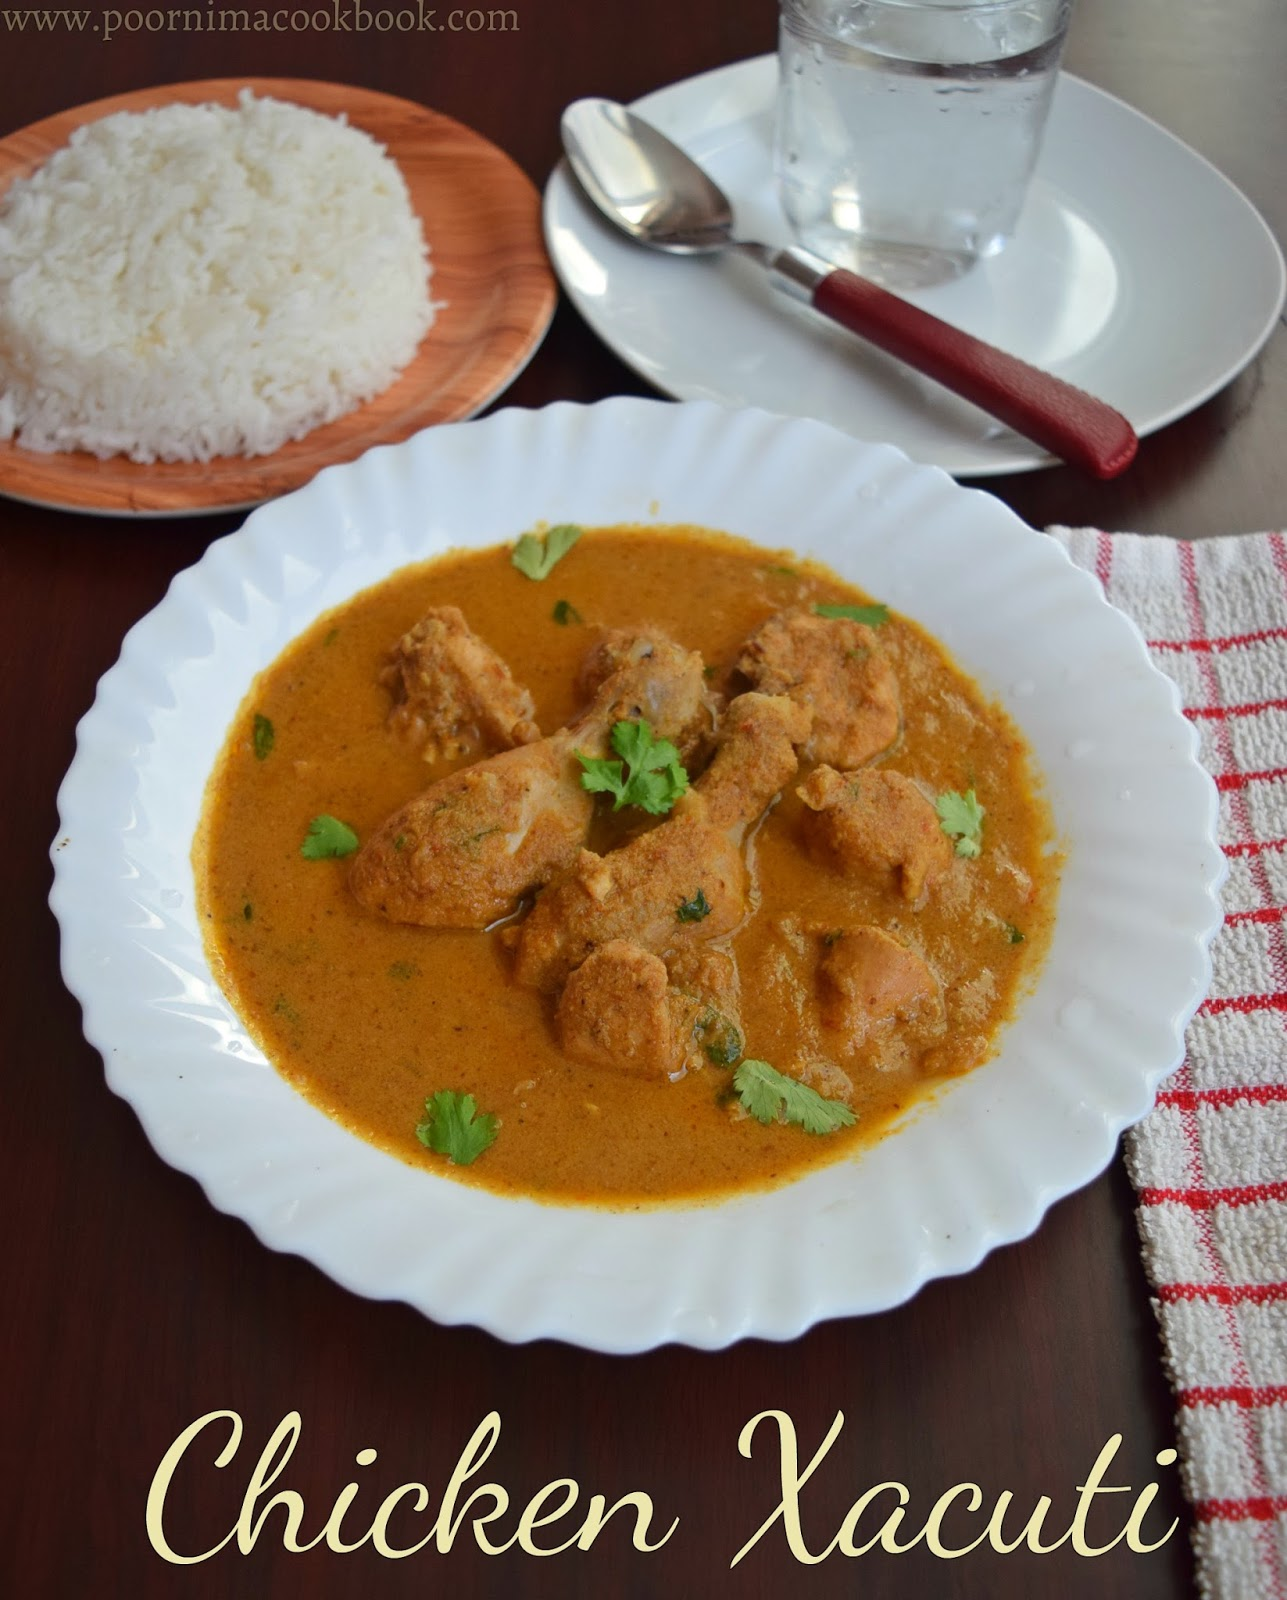 Poornimas cook book chicken xacuti goan chicken curry prep time forumfinder Gallery